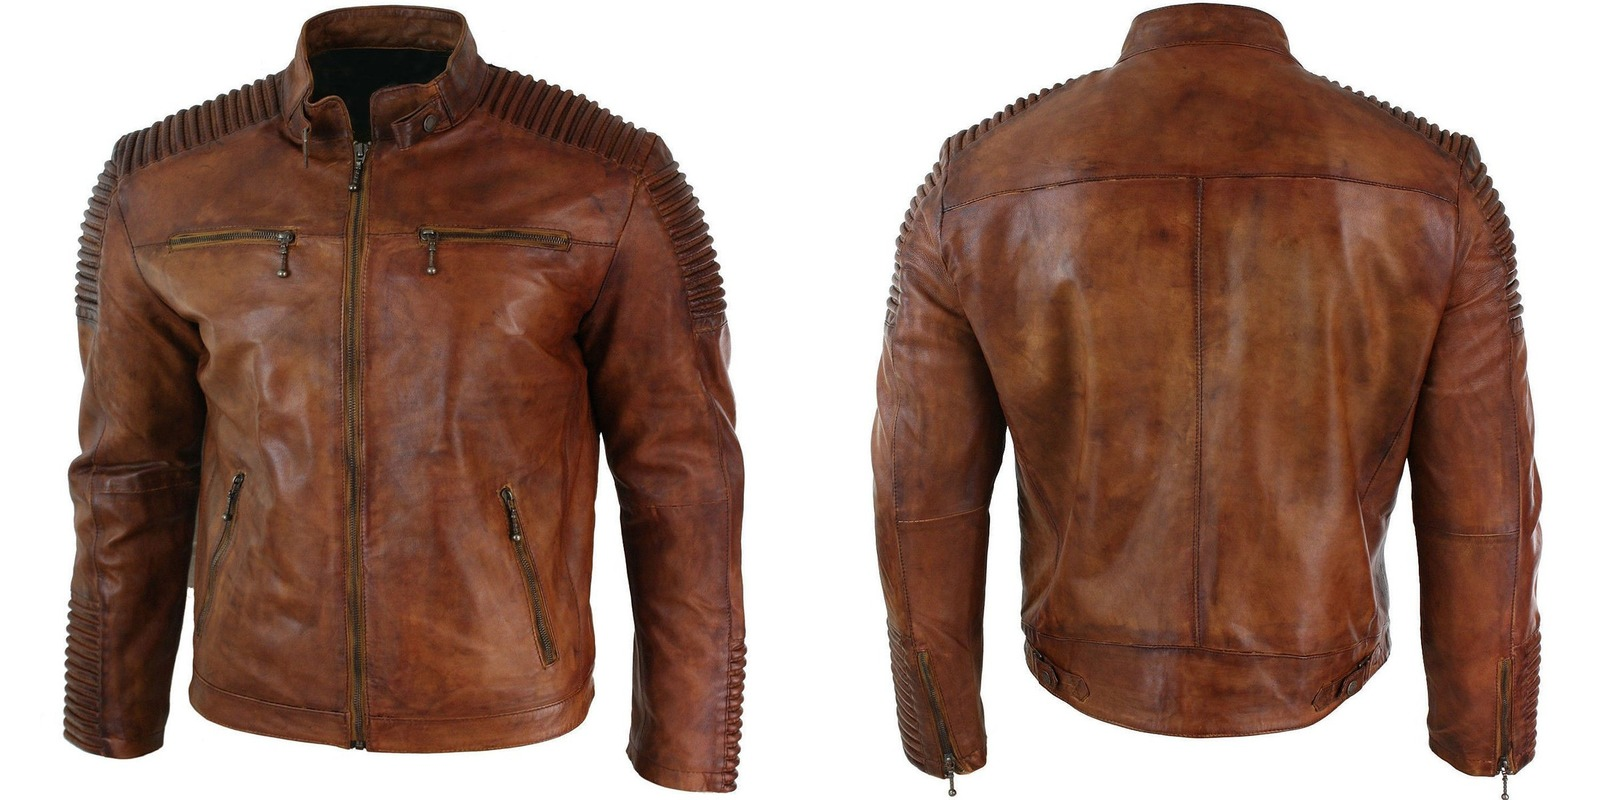 Men&39s Vintage Biker Cafe Racer Wax Distressed Brown Leather Jacket